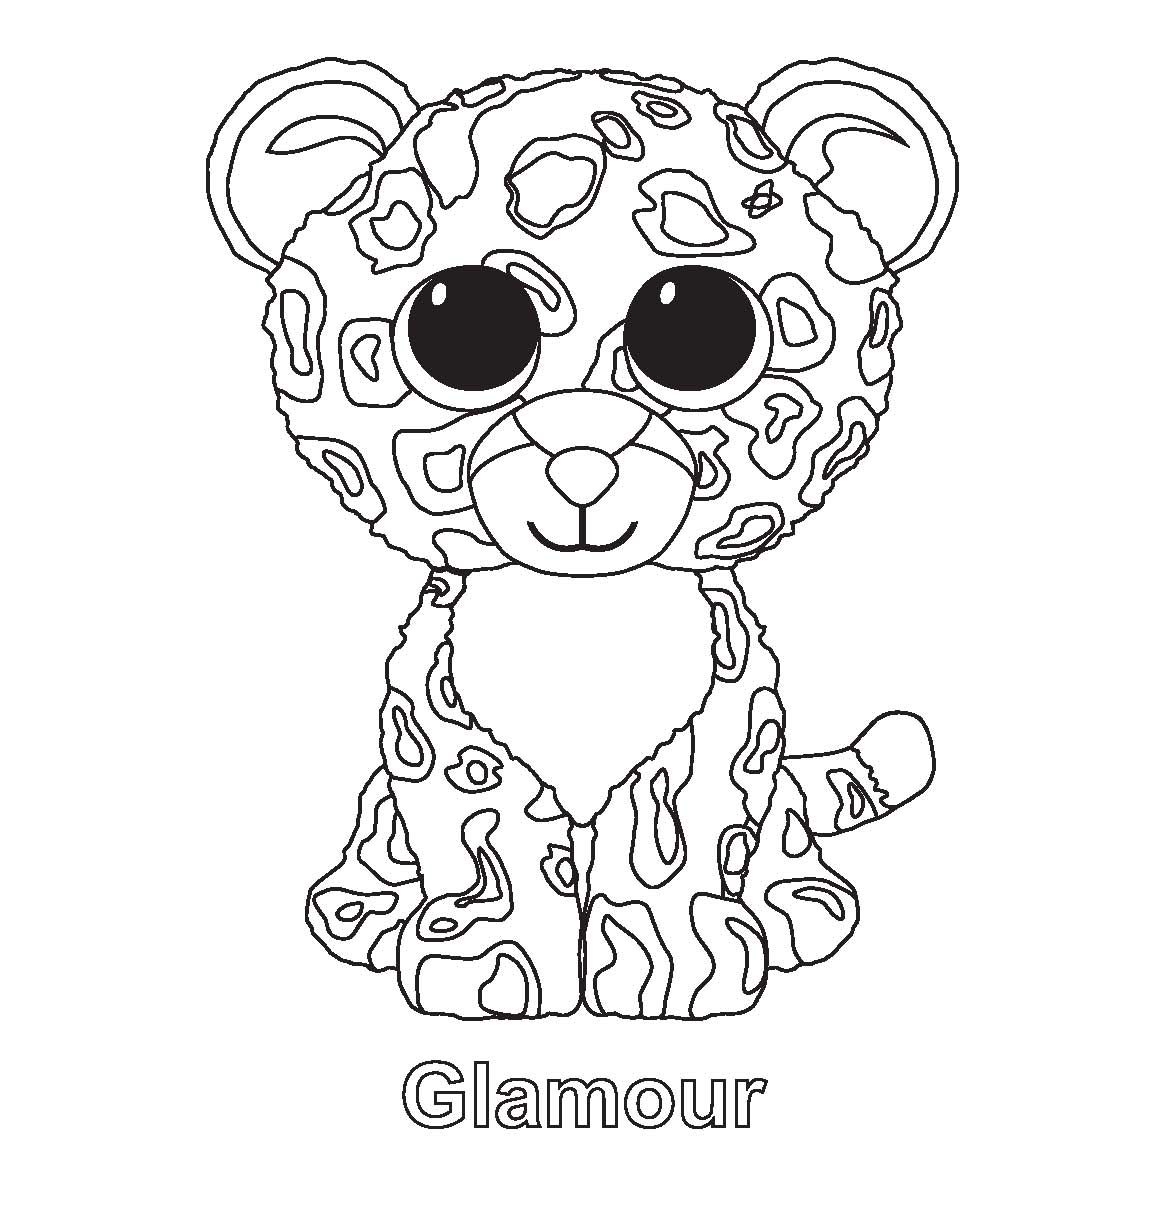 glamour beanie boo coloring pages printable and coloring book to print for free find more coloring pages online for kids and adults of glamour beanie boo - Beanie Boo Coloring Pages